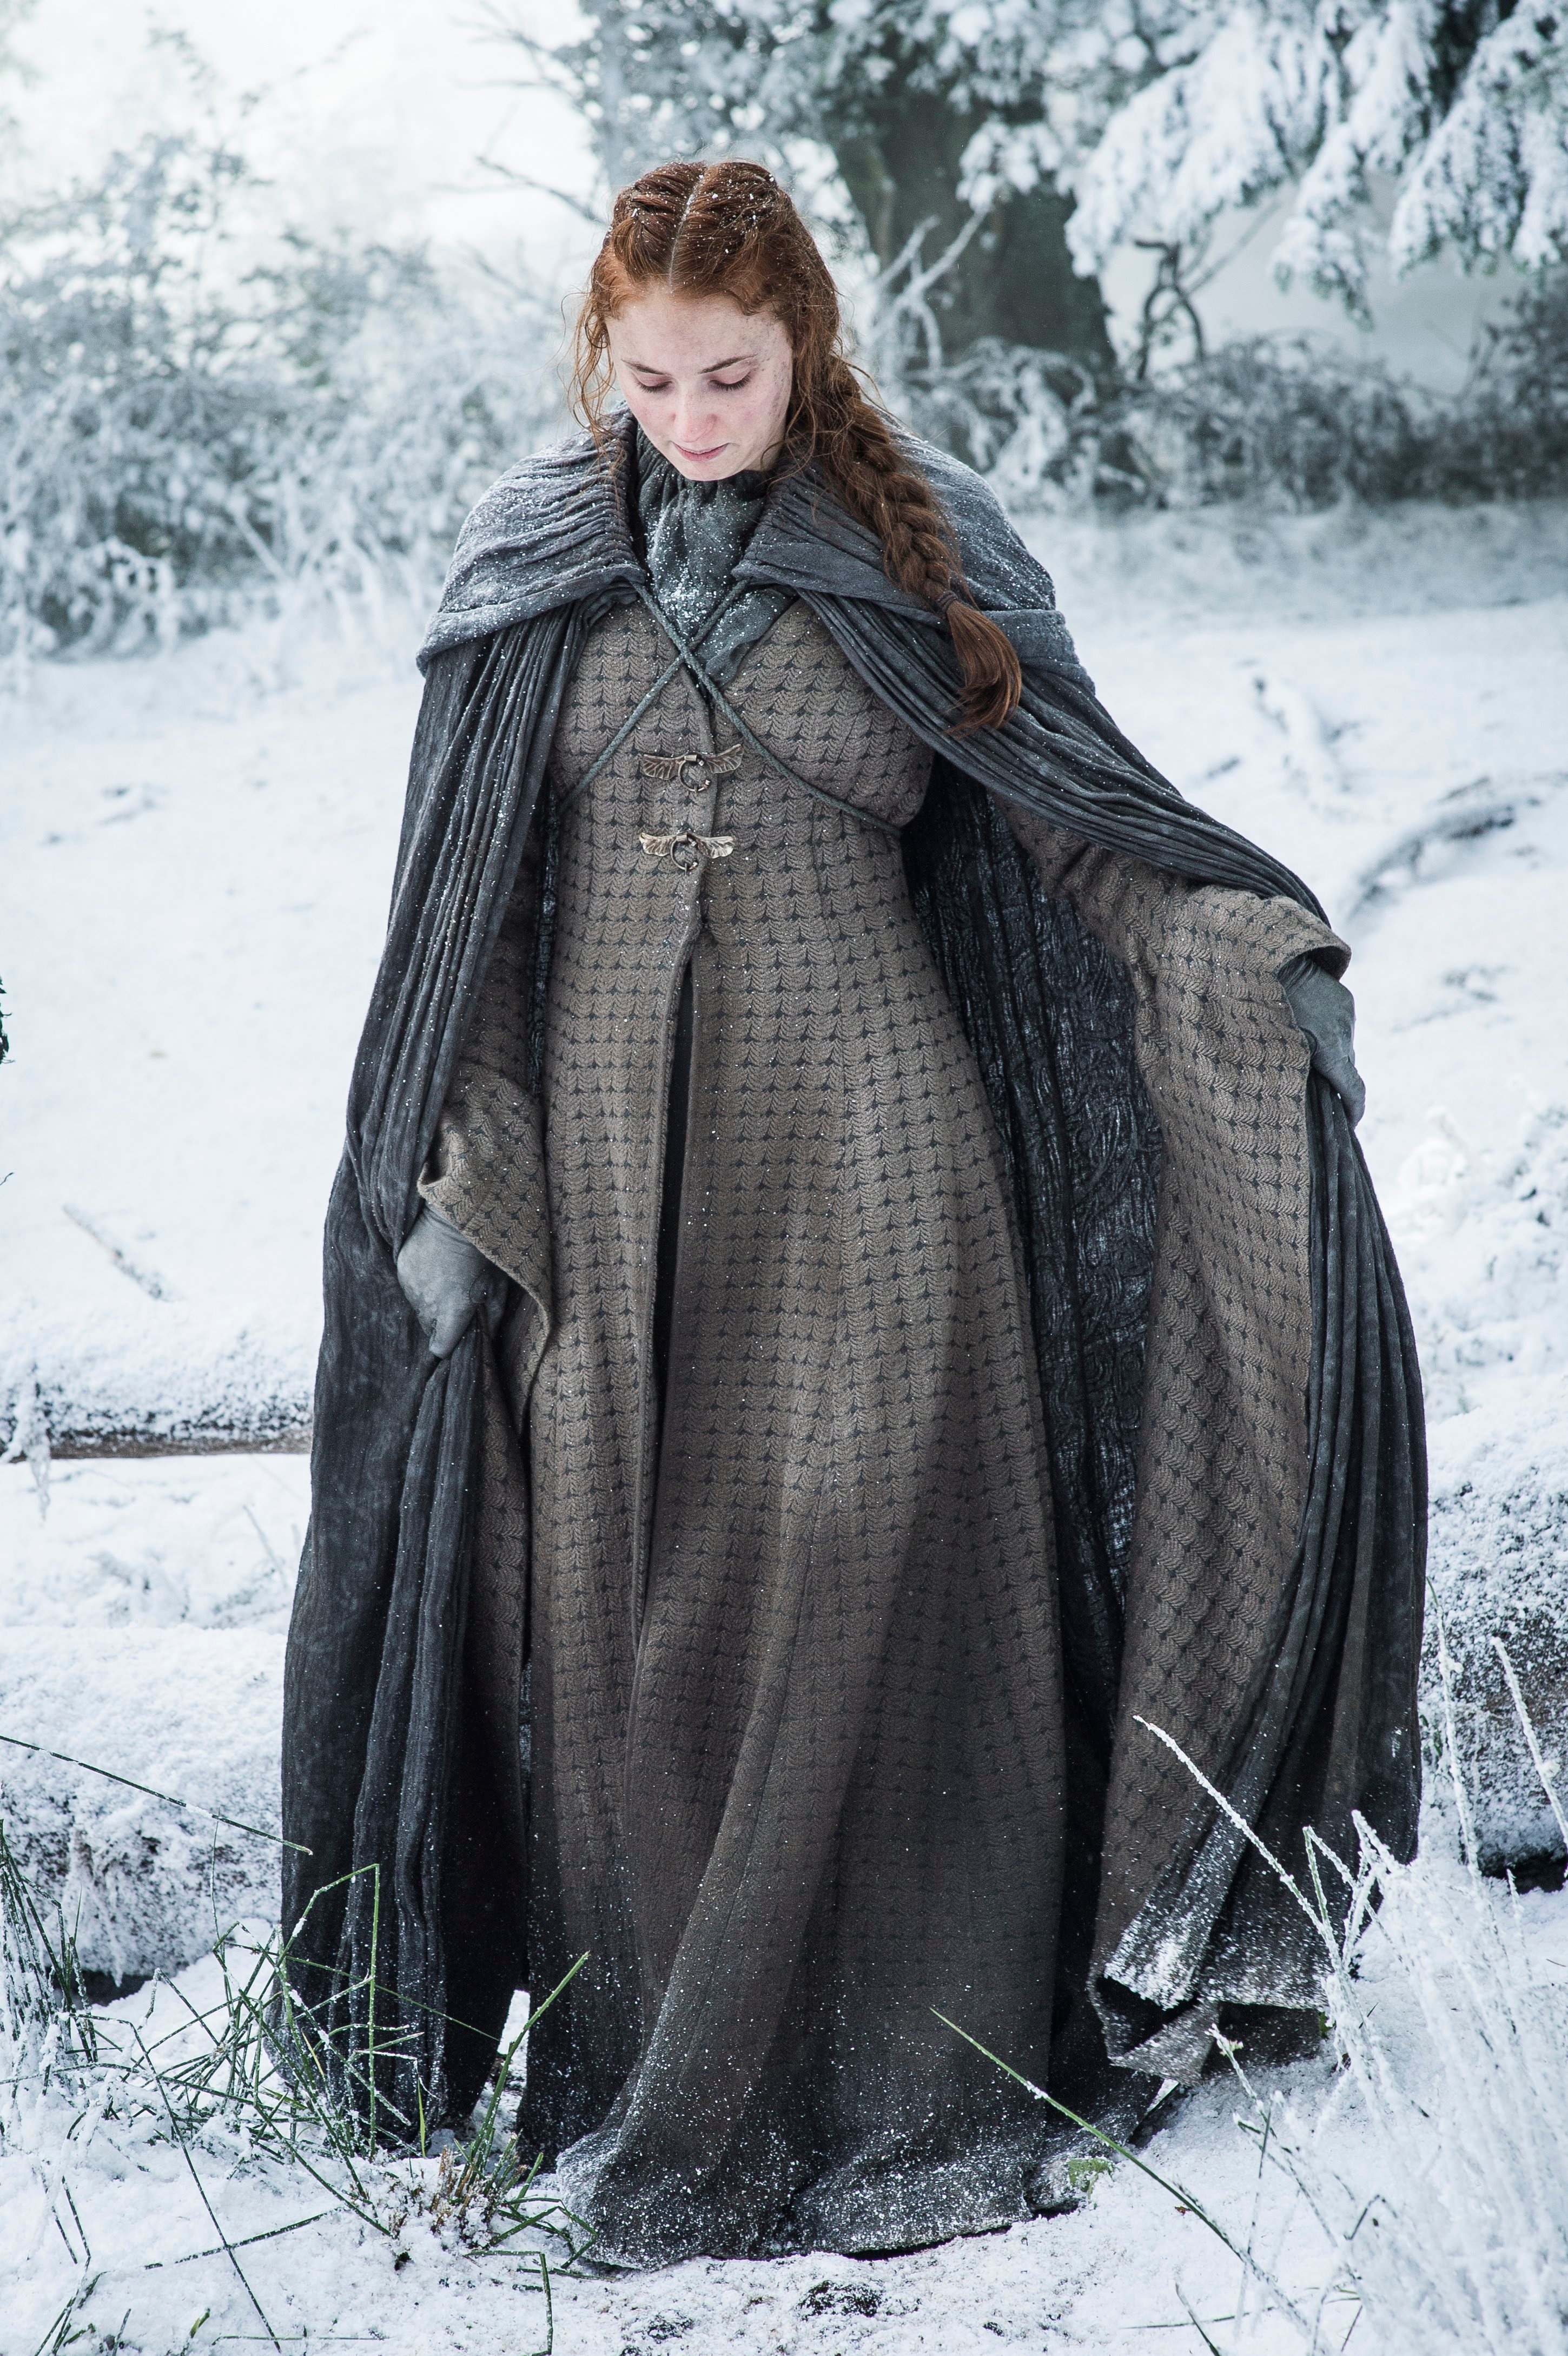 game of thrones season 6 photos, sansa stark, winterfell